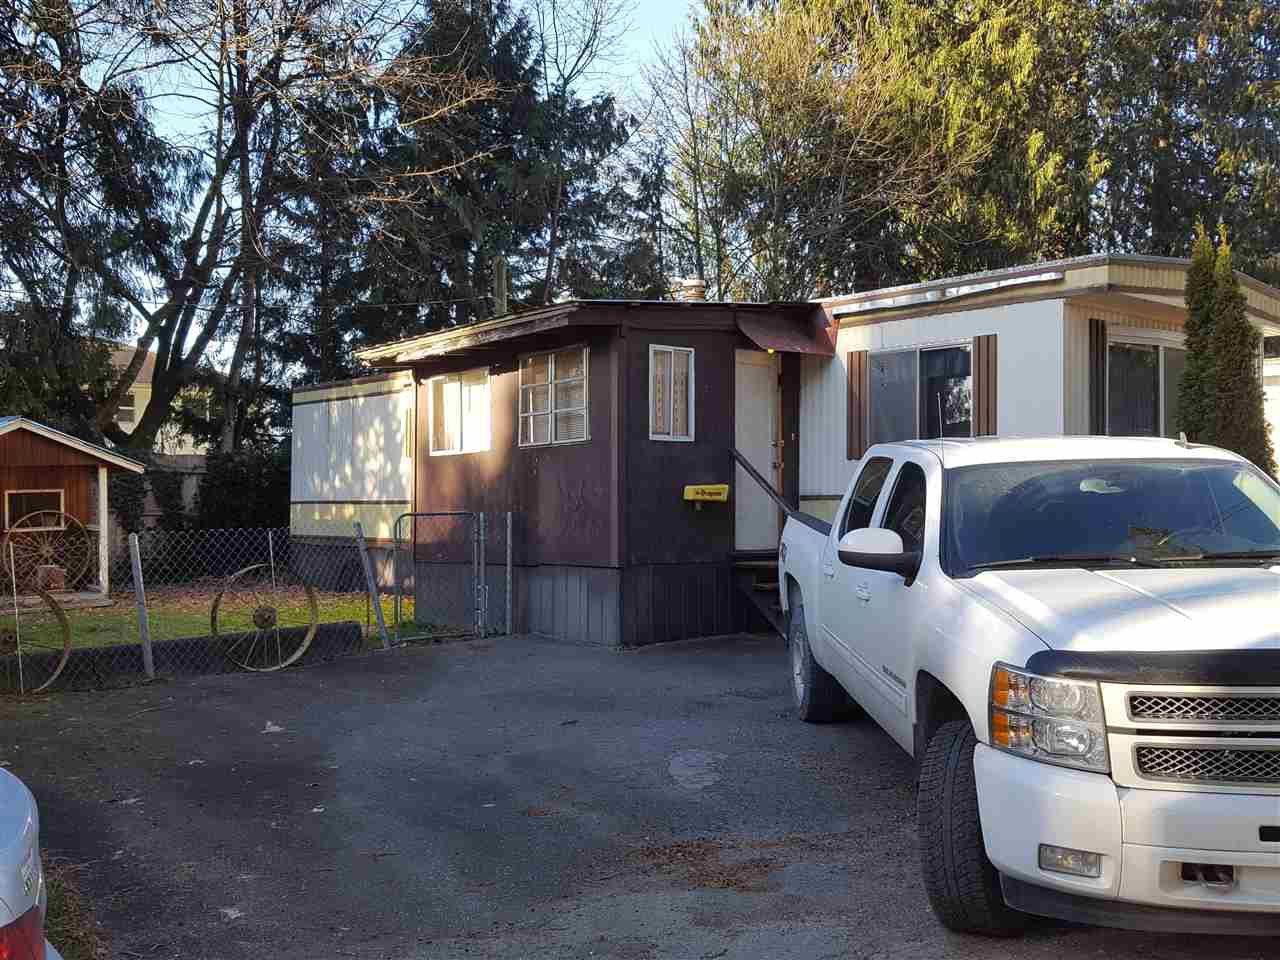 """Main Photo: 6 52604 YALE Road in Rosedale: Rosedale Popkum Manufactured Home for sale in """"MOUNT CHEAM MOBILE HOME PARK"""" : MLS®# R2127602"""